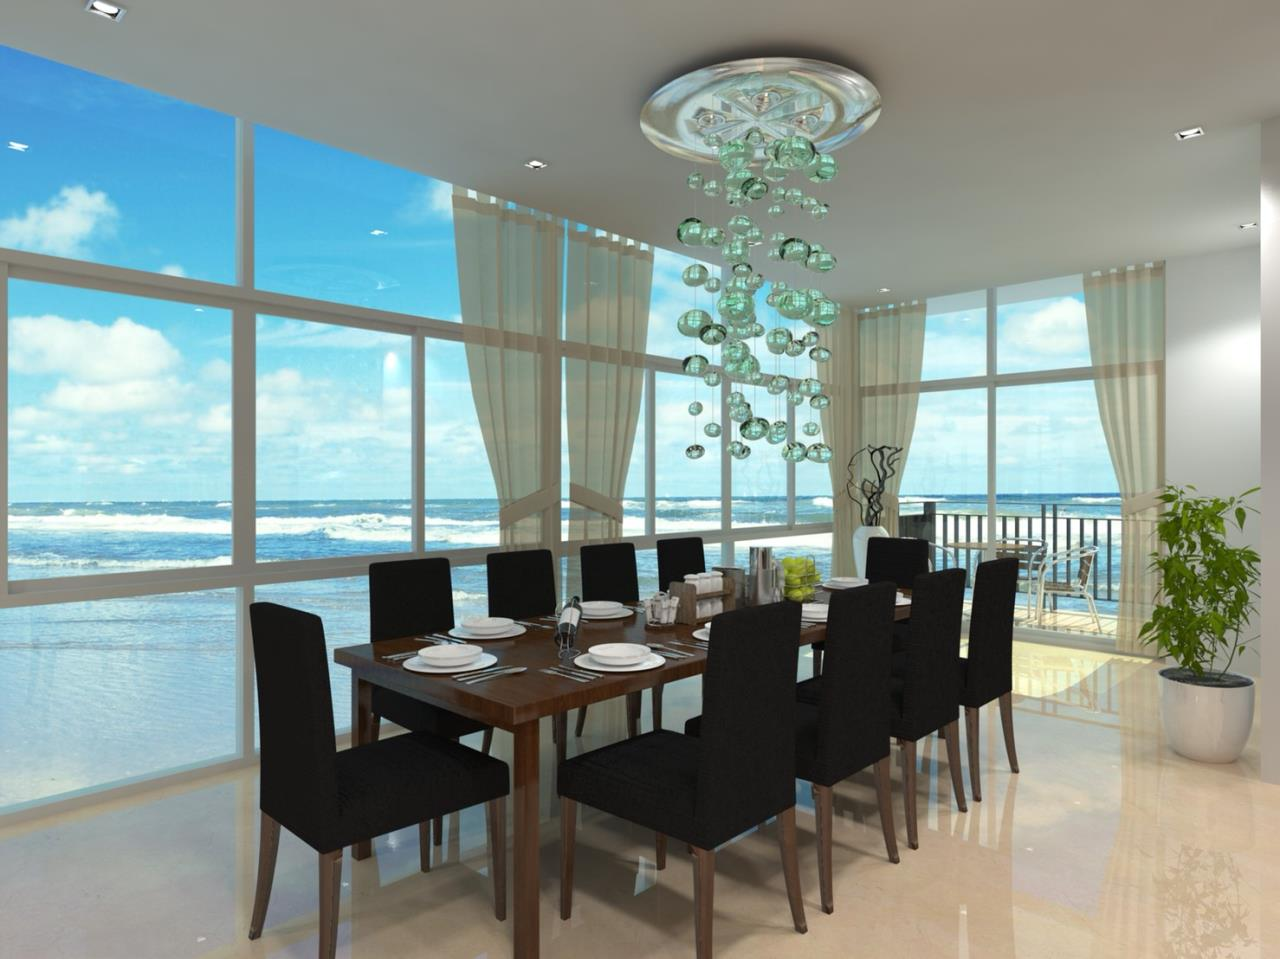 Signature Realty ( Thailand ) Co Ltd Agency's Furnished 1bedroom 46 sq.m condo with jacuzzi floor 2-10 at The Grand Jomtein Beach Pattaya 26